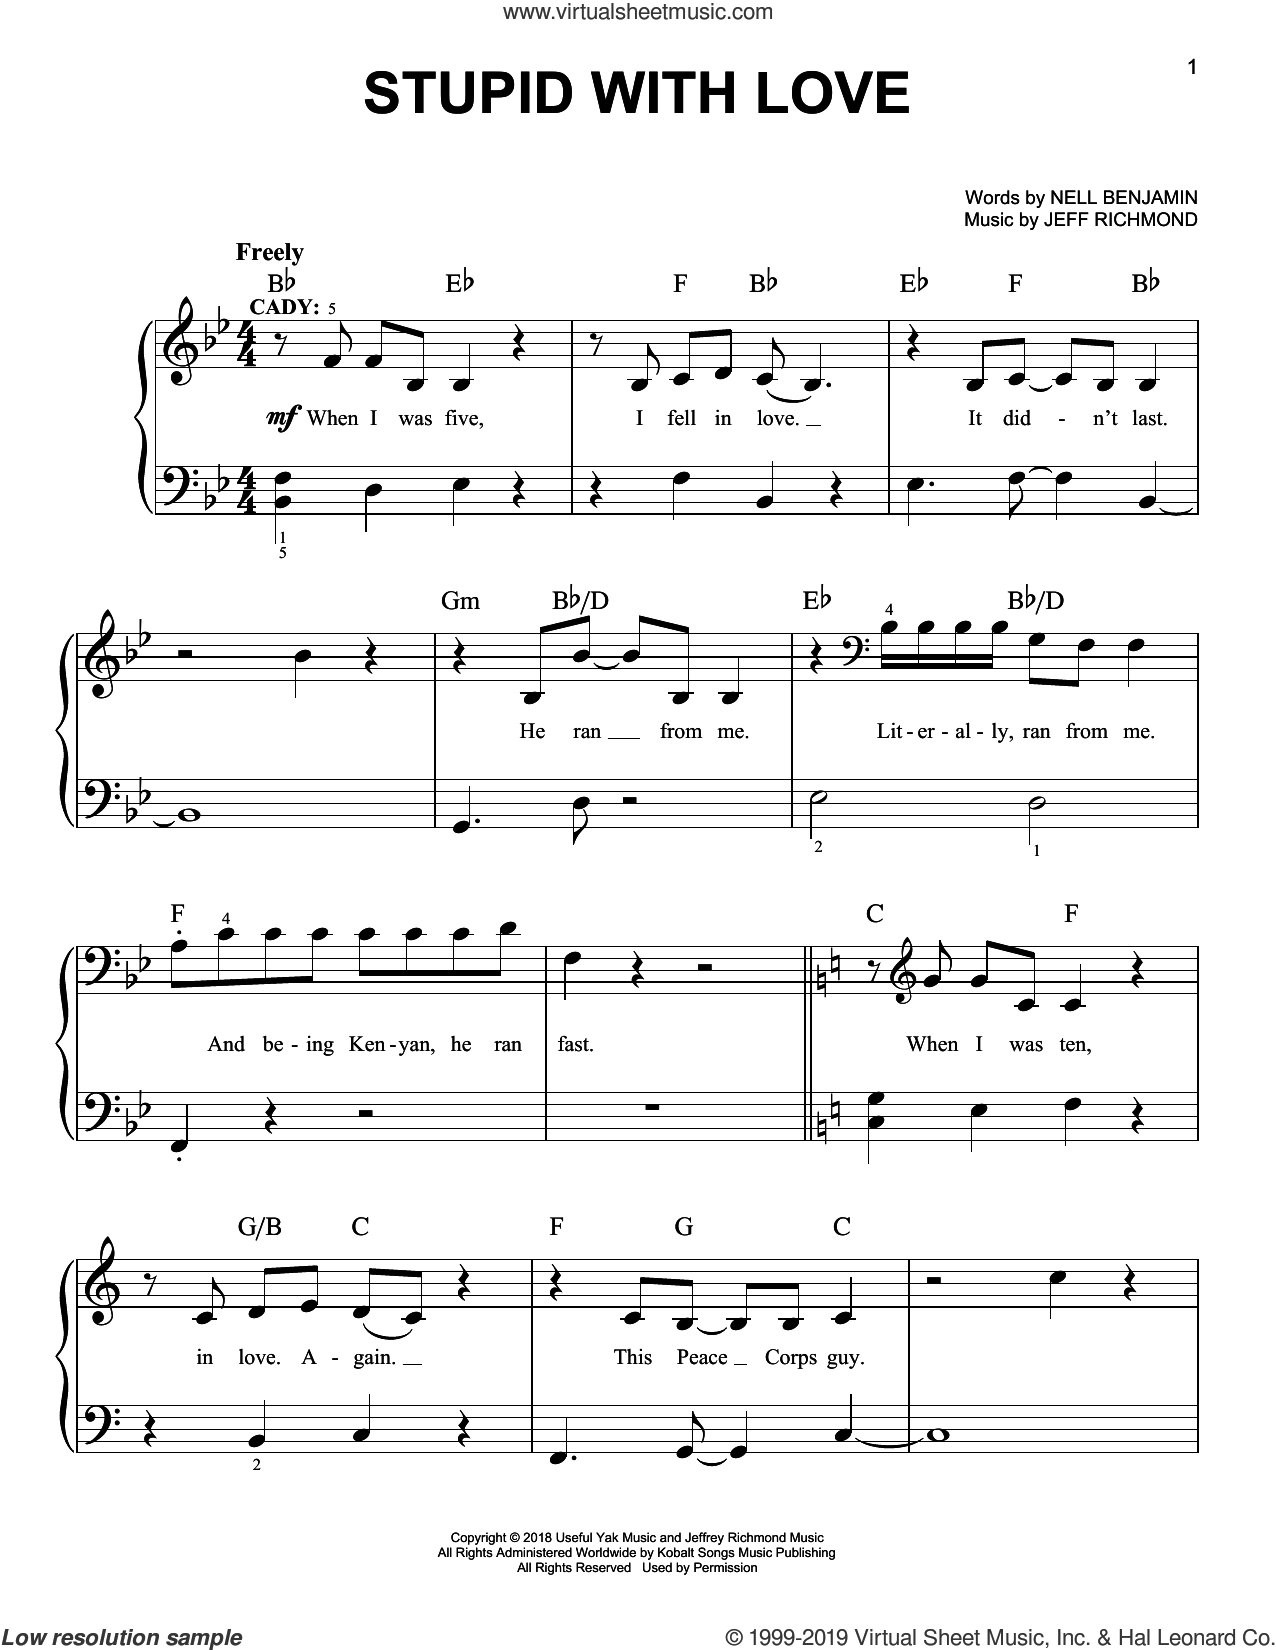 Stupid With Love (from Mean Girls: The Broadway Musical) sheet music for piano solo by Nell Benjamin, Jeff Richmond and Jeff Richmond & Nell Benjamin, easy skill level